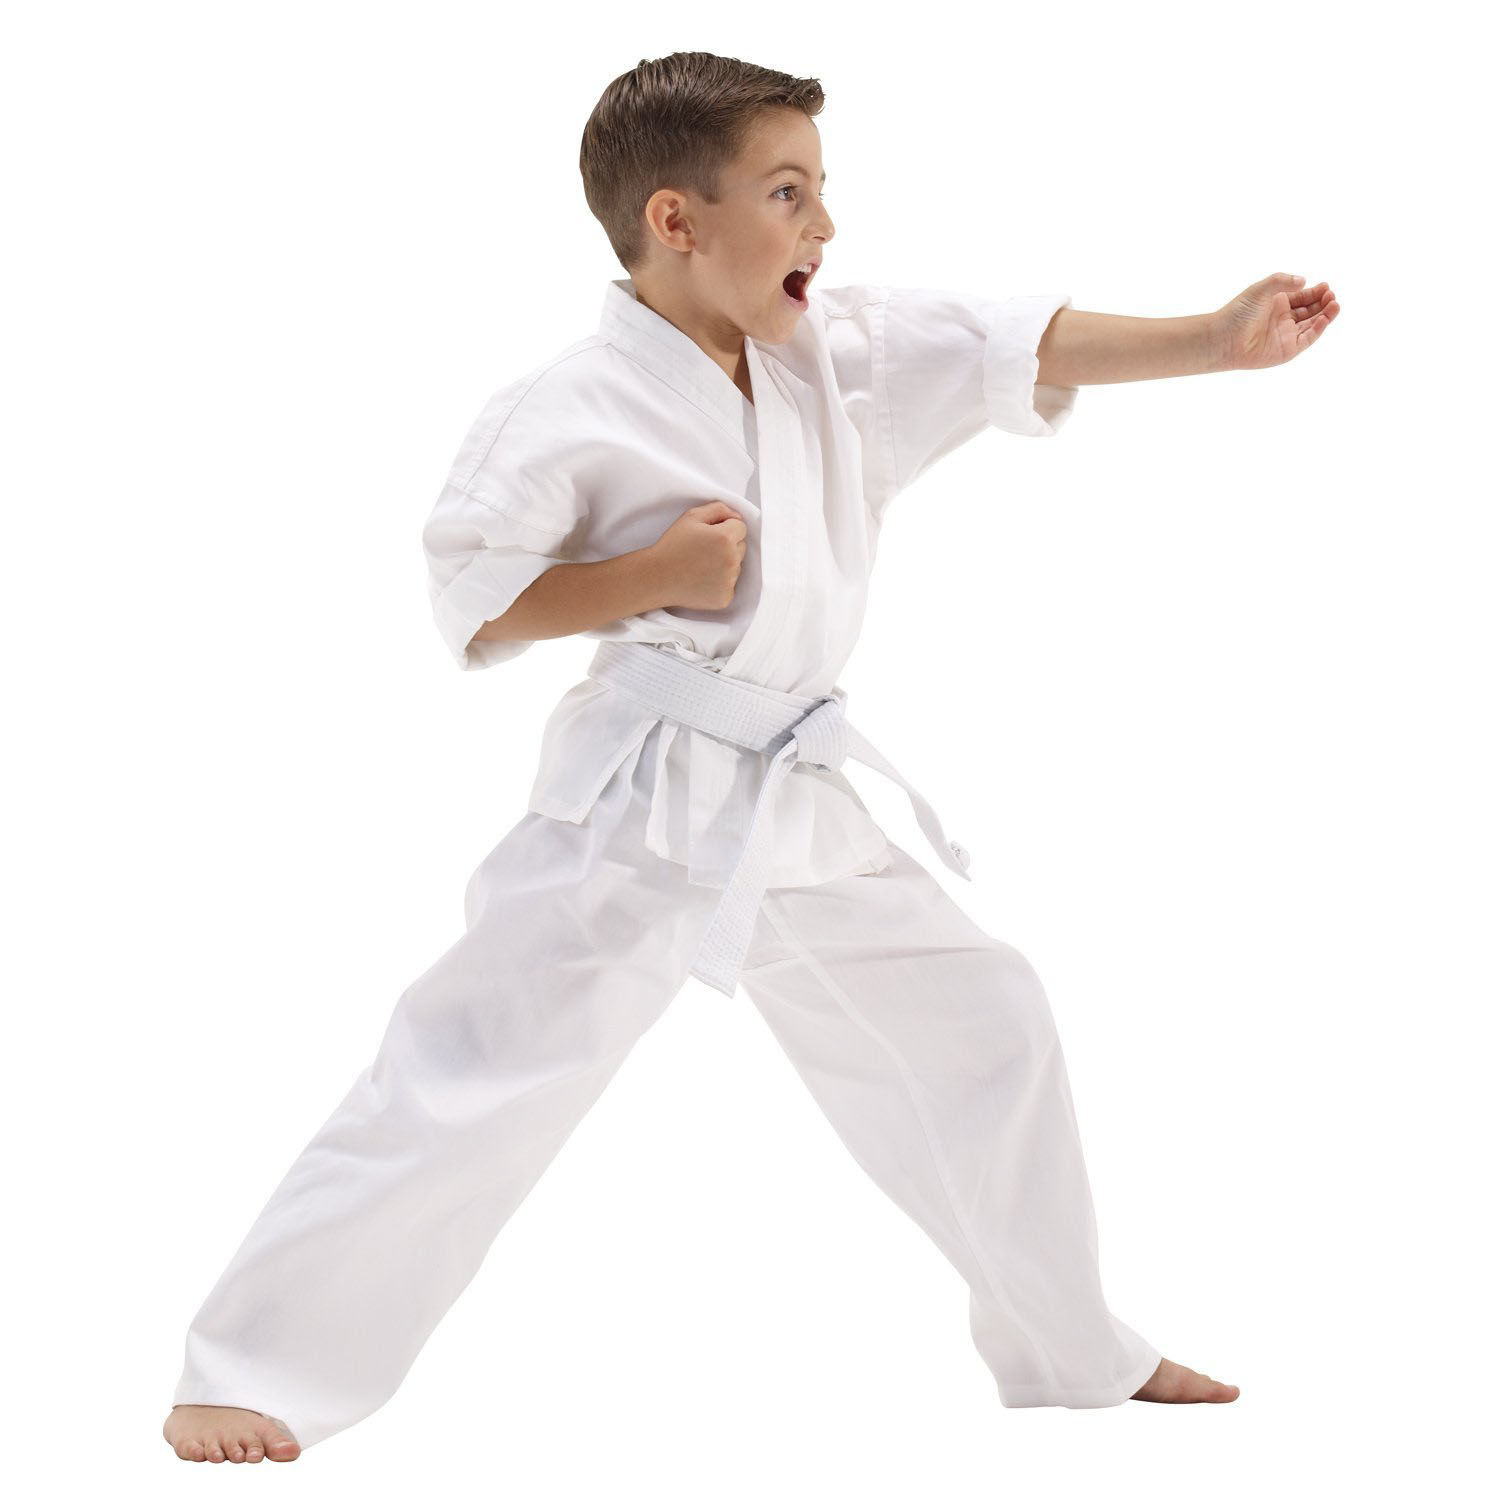 Karate Gi Karate Uniform Bronze Light Weight 7 Oz